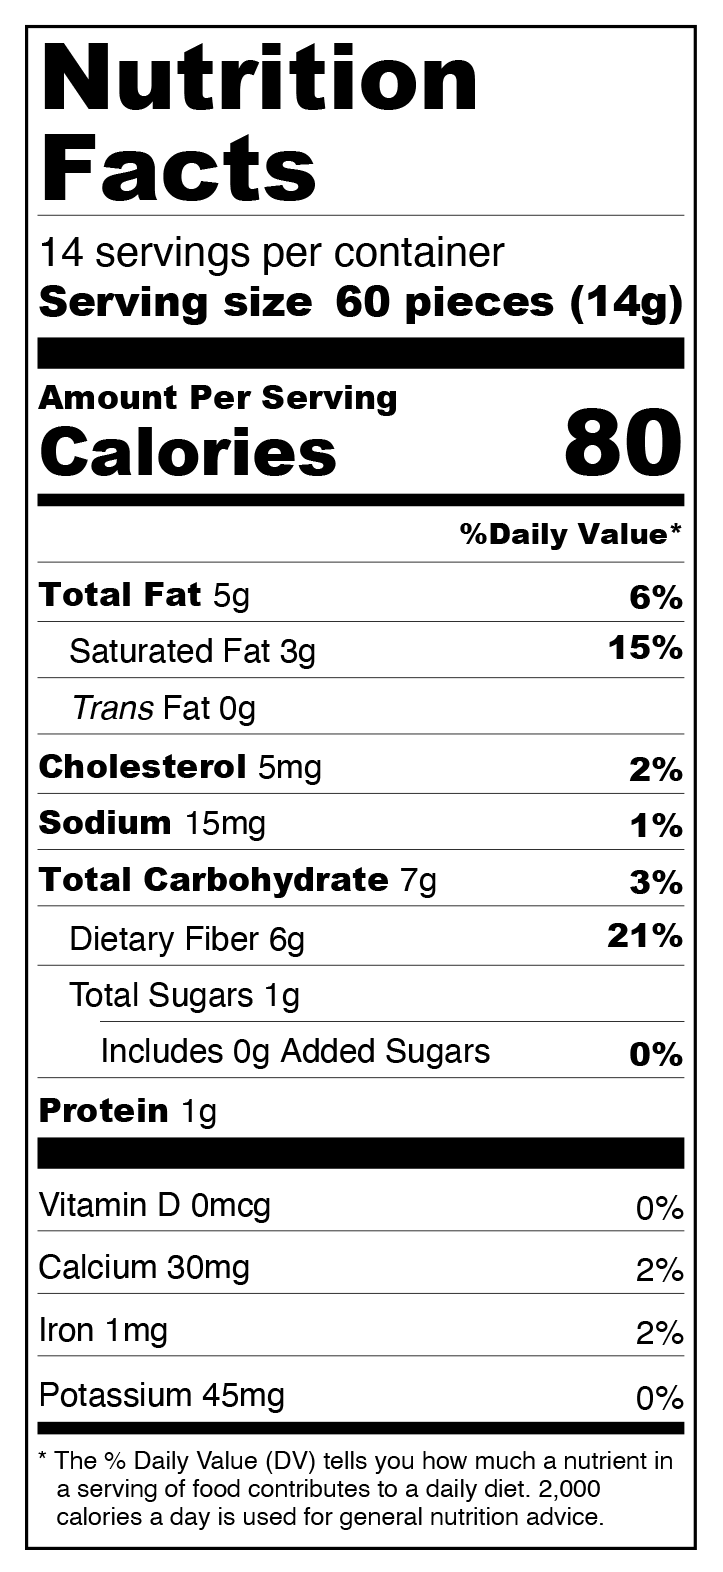 6-Pack White Chocolate Chips - No Sugar Added, Low Carb Nutrition Facts